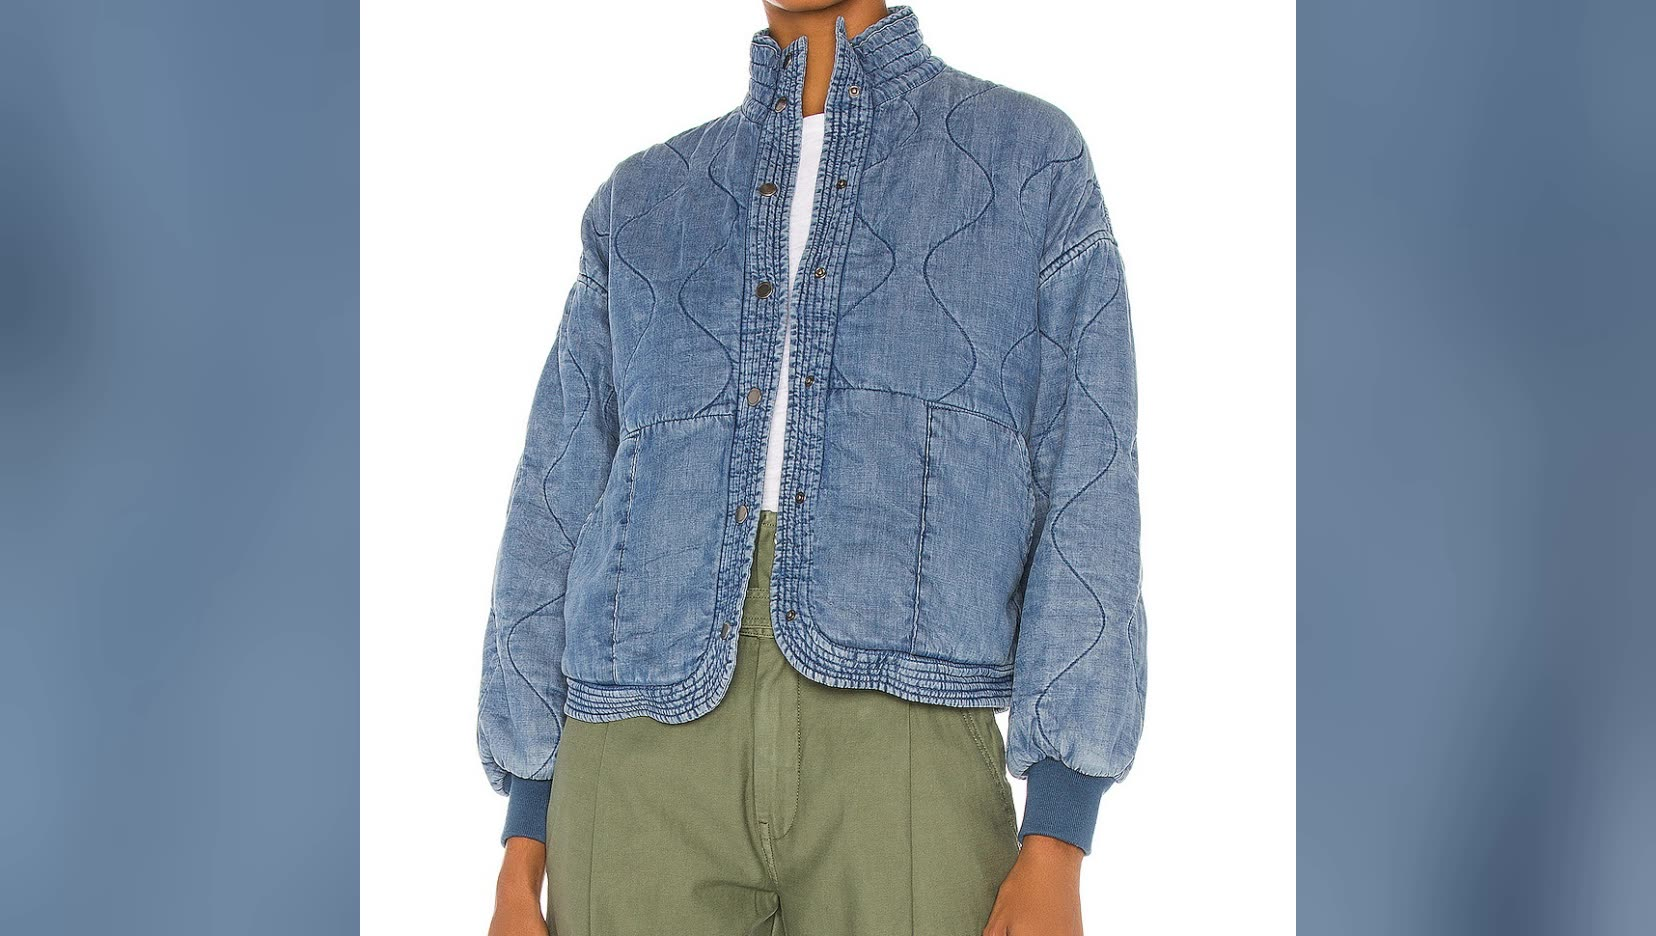 Casual Jacket Long Sleeve Blue Denim Fitted Jeans Jackets Ladies Street Wear Fashion Out Wearing